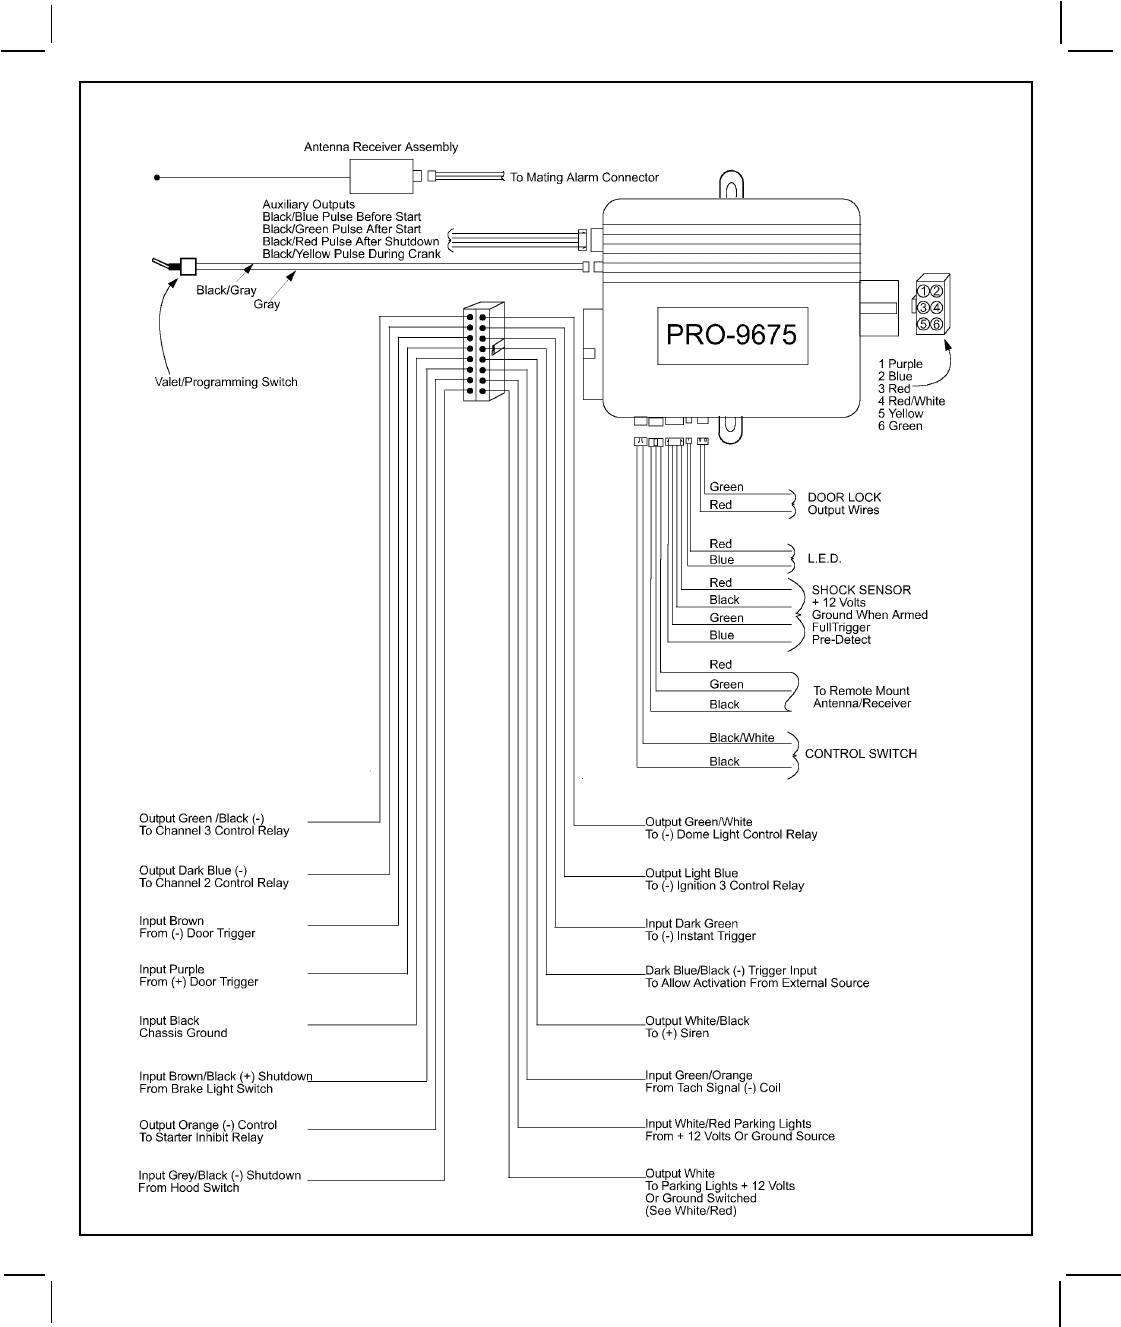 63de61ef f929 4813 ac08 919f46a5cd26 bg16 page 22 of audiovox automobile alarm pro 9675ft user guide audiovox alarm wiring diagrams at alyssarenee.co